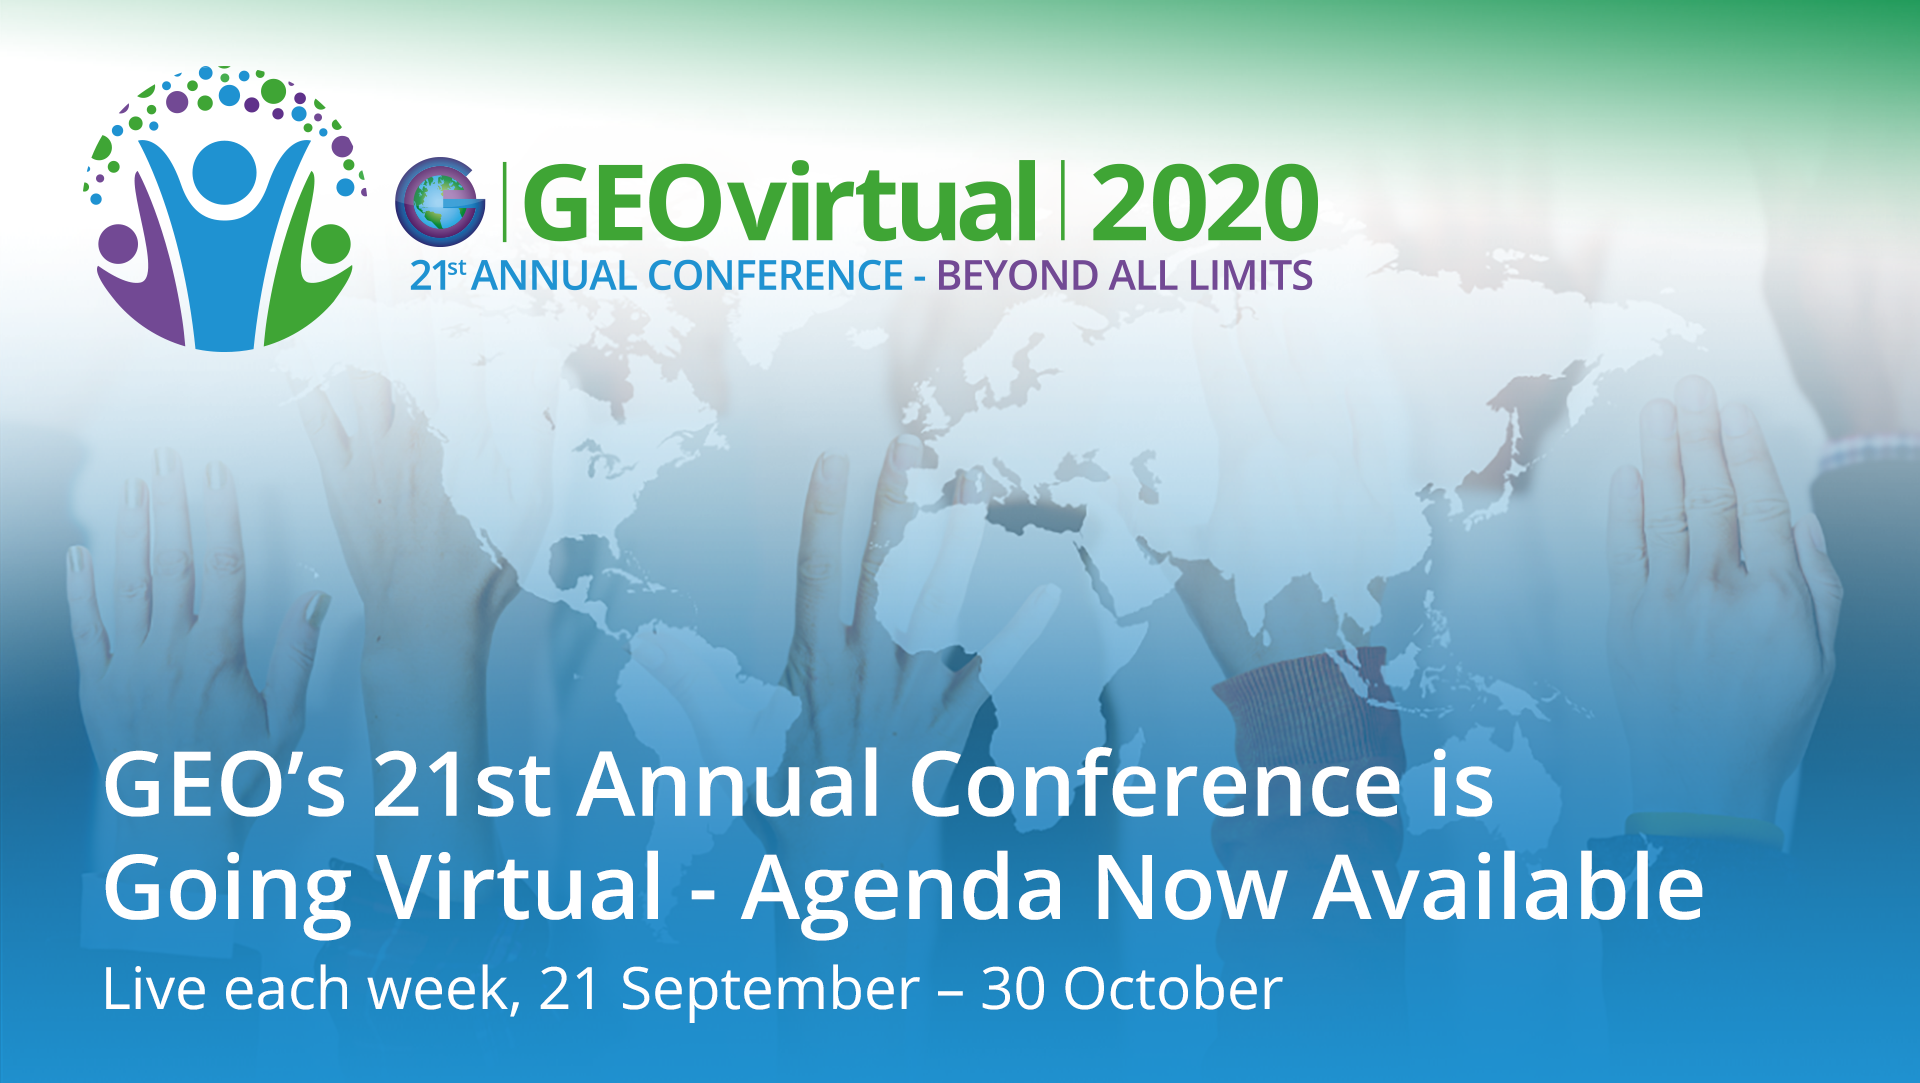 Agenda Announced for GEO's 21st Annual Conference